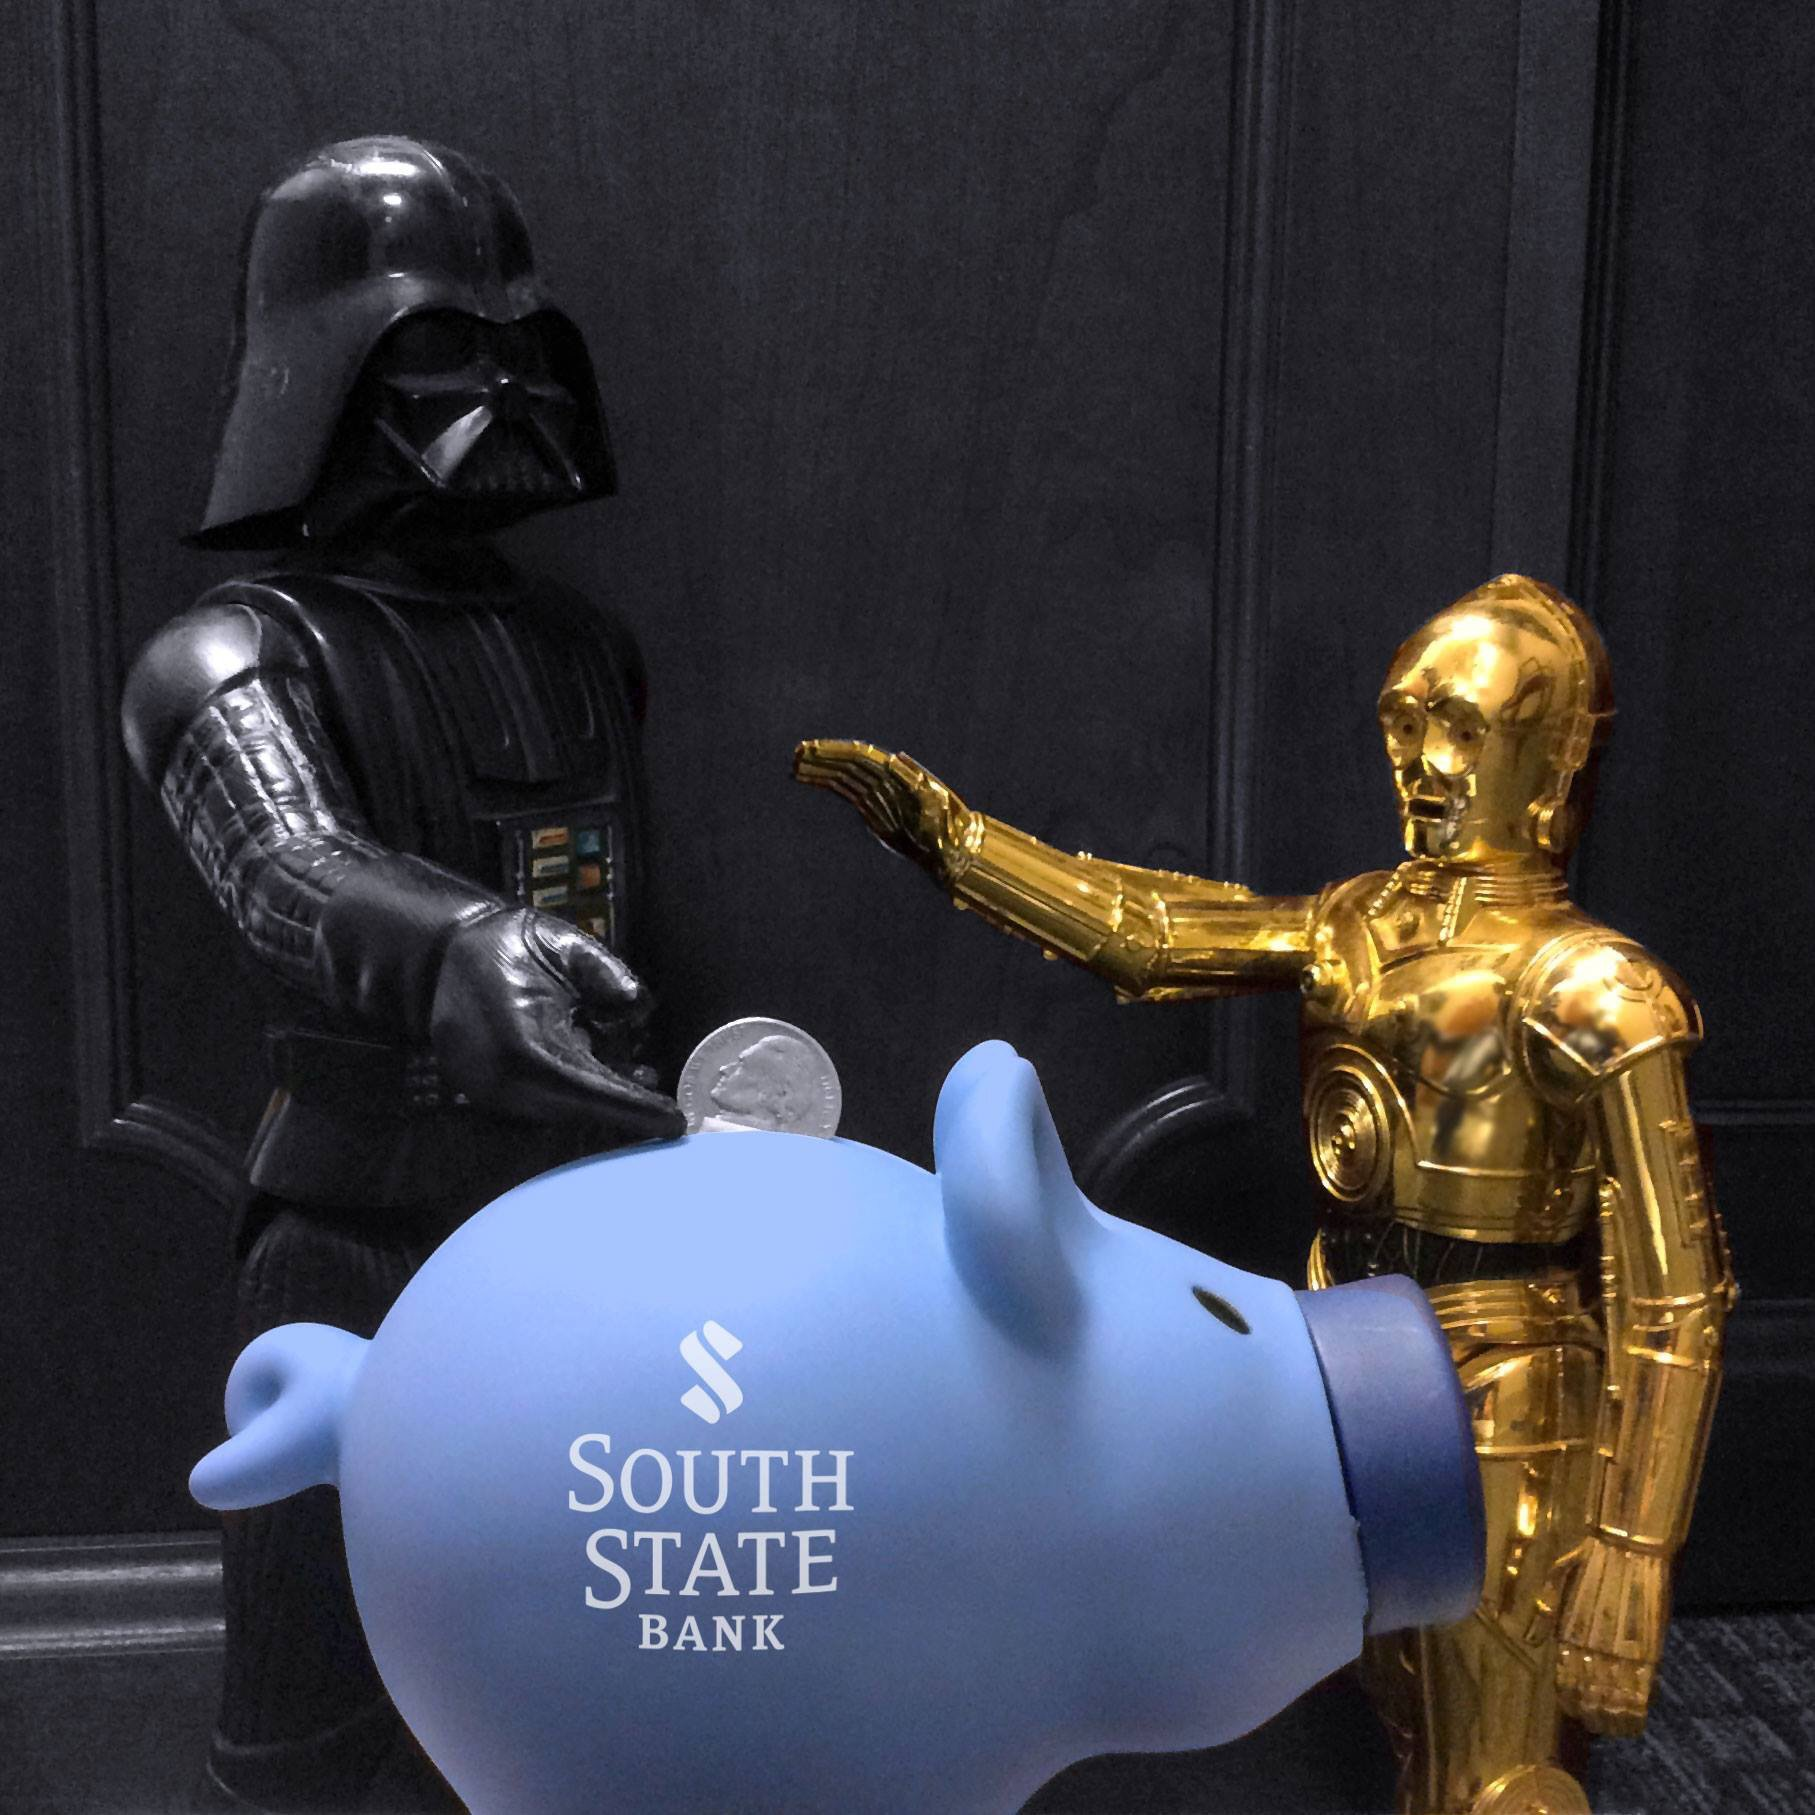 Even Darth Vader and C3PO can agree on a savings plan. Happy #StarWarsDay! https://t.co/4rK0fvKZlG